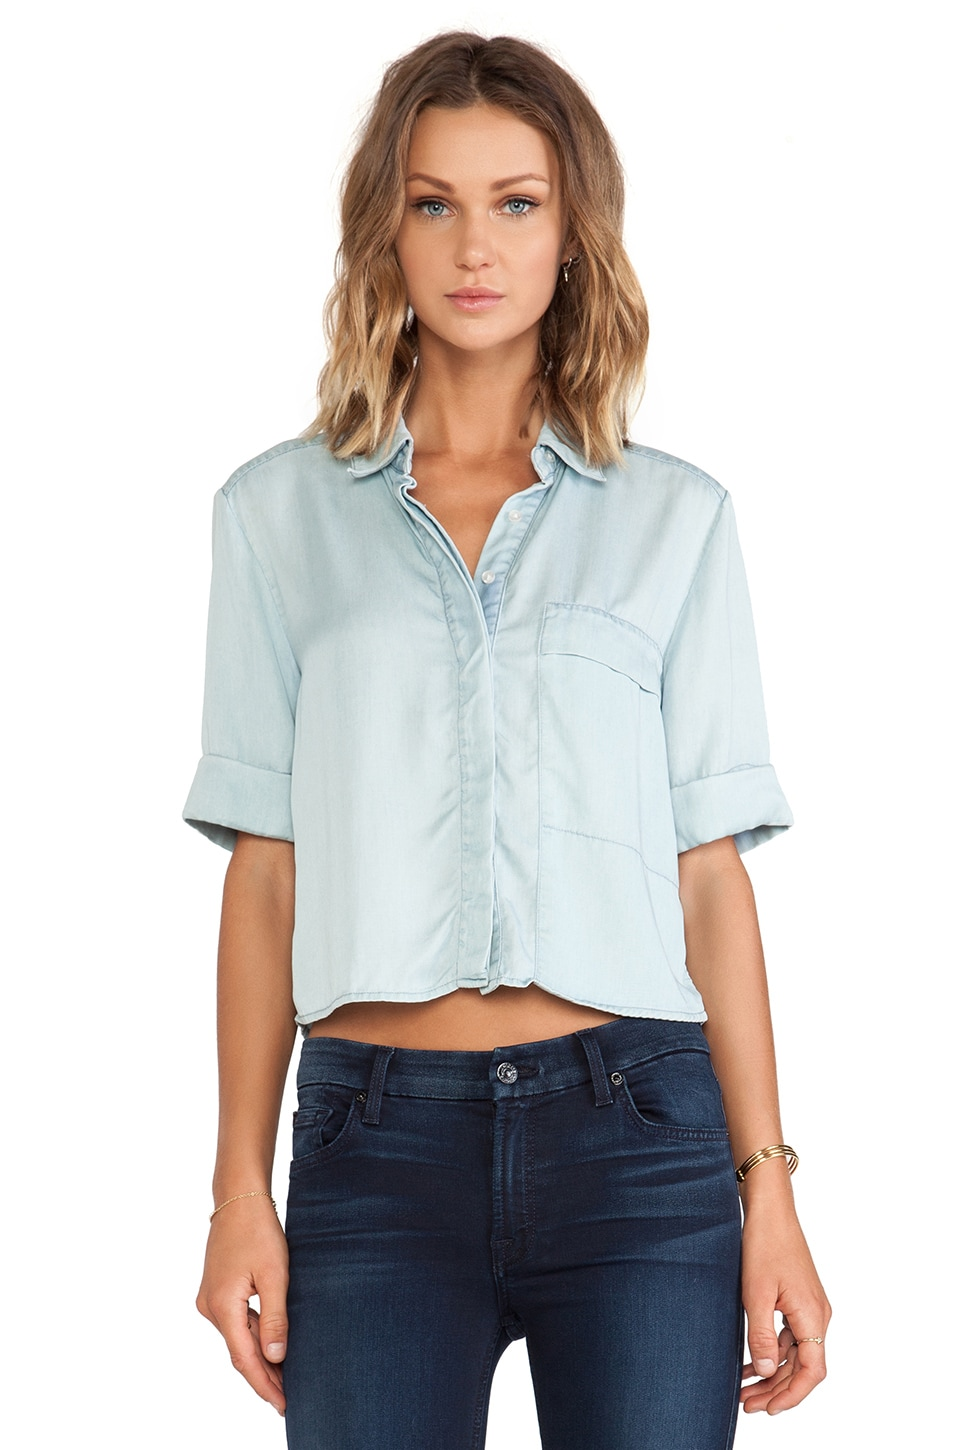 7 For All Mankind Shirt w/ Pocket in Dusty Light Blue